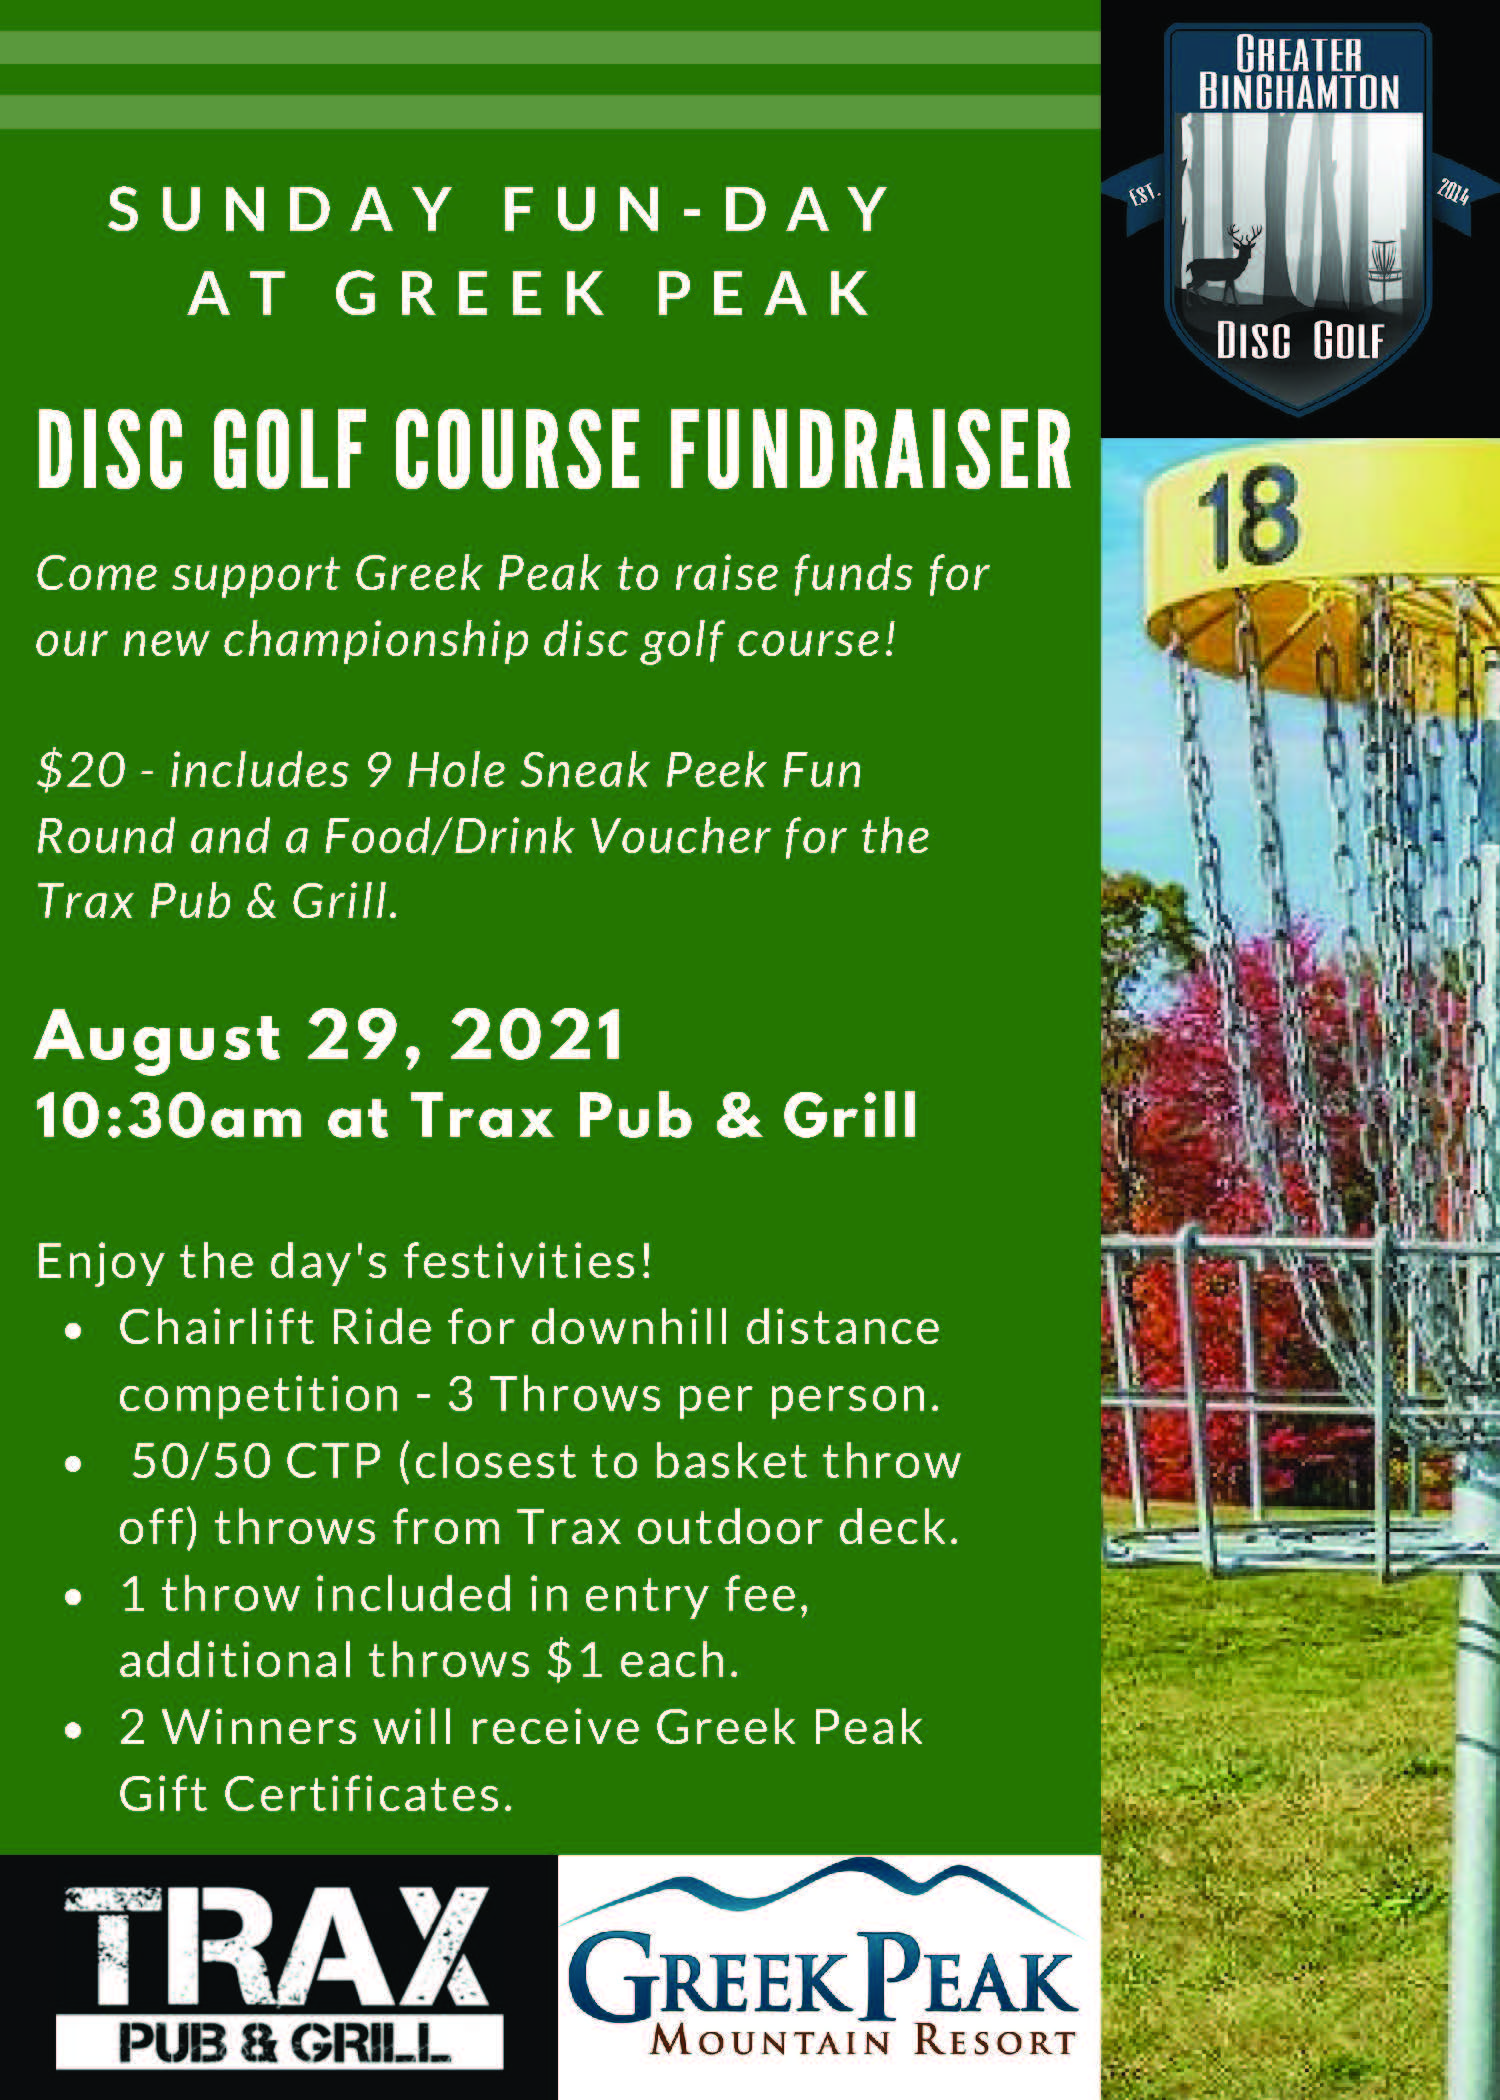 flyer for a disc golf fundraiser that Greek Peak is having on Sunday, August 29th at 10:30am for $20 you get to play 9 holes and receive a food/drink voucher for Trax Pub & Grill